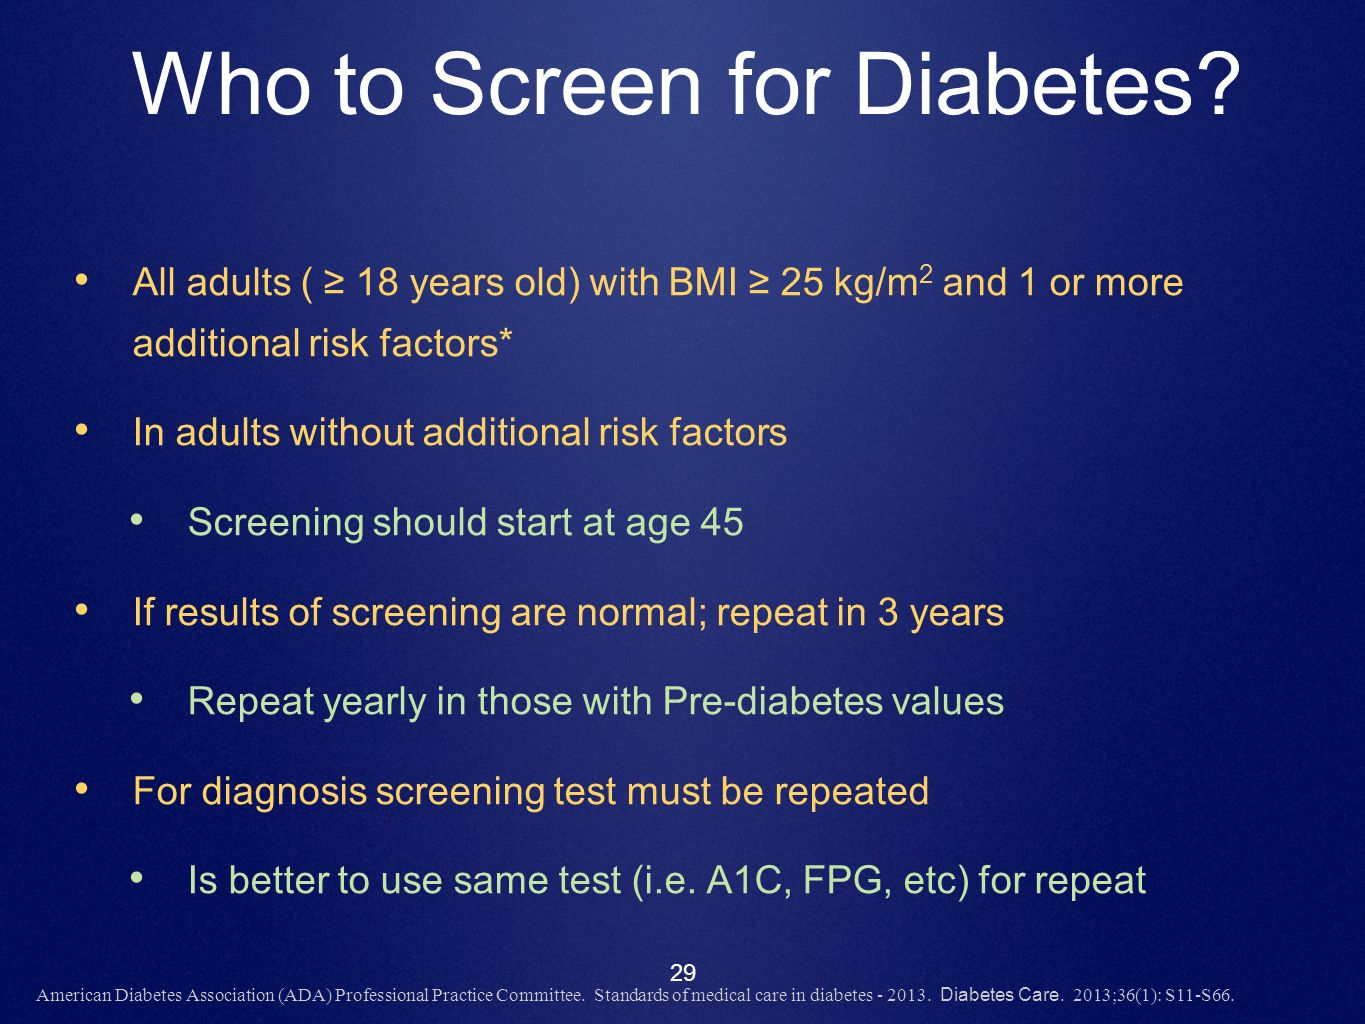 Who to Screen for Diabetes